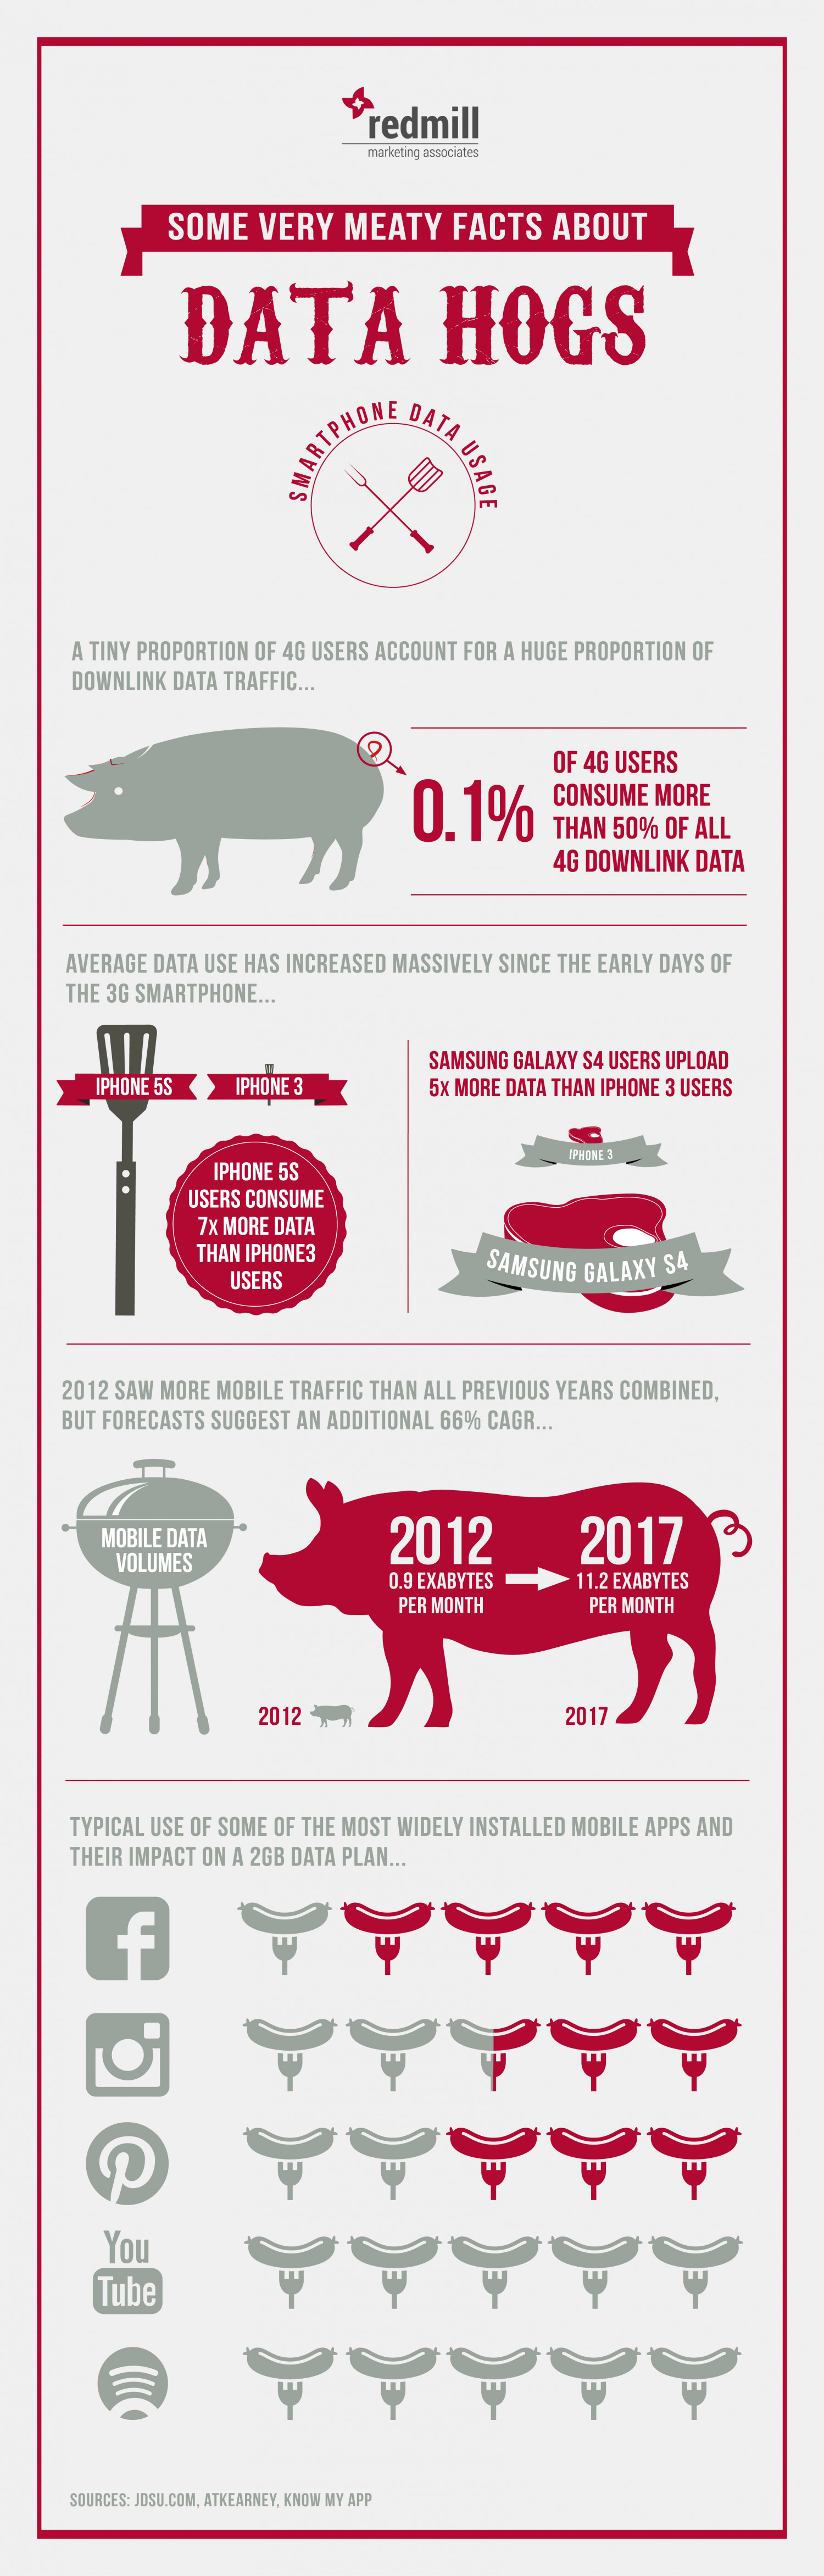 Some Very Meaty Facts About Data Hogs Infographic